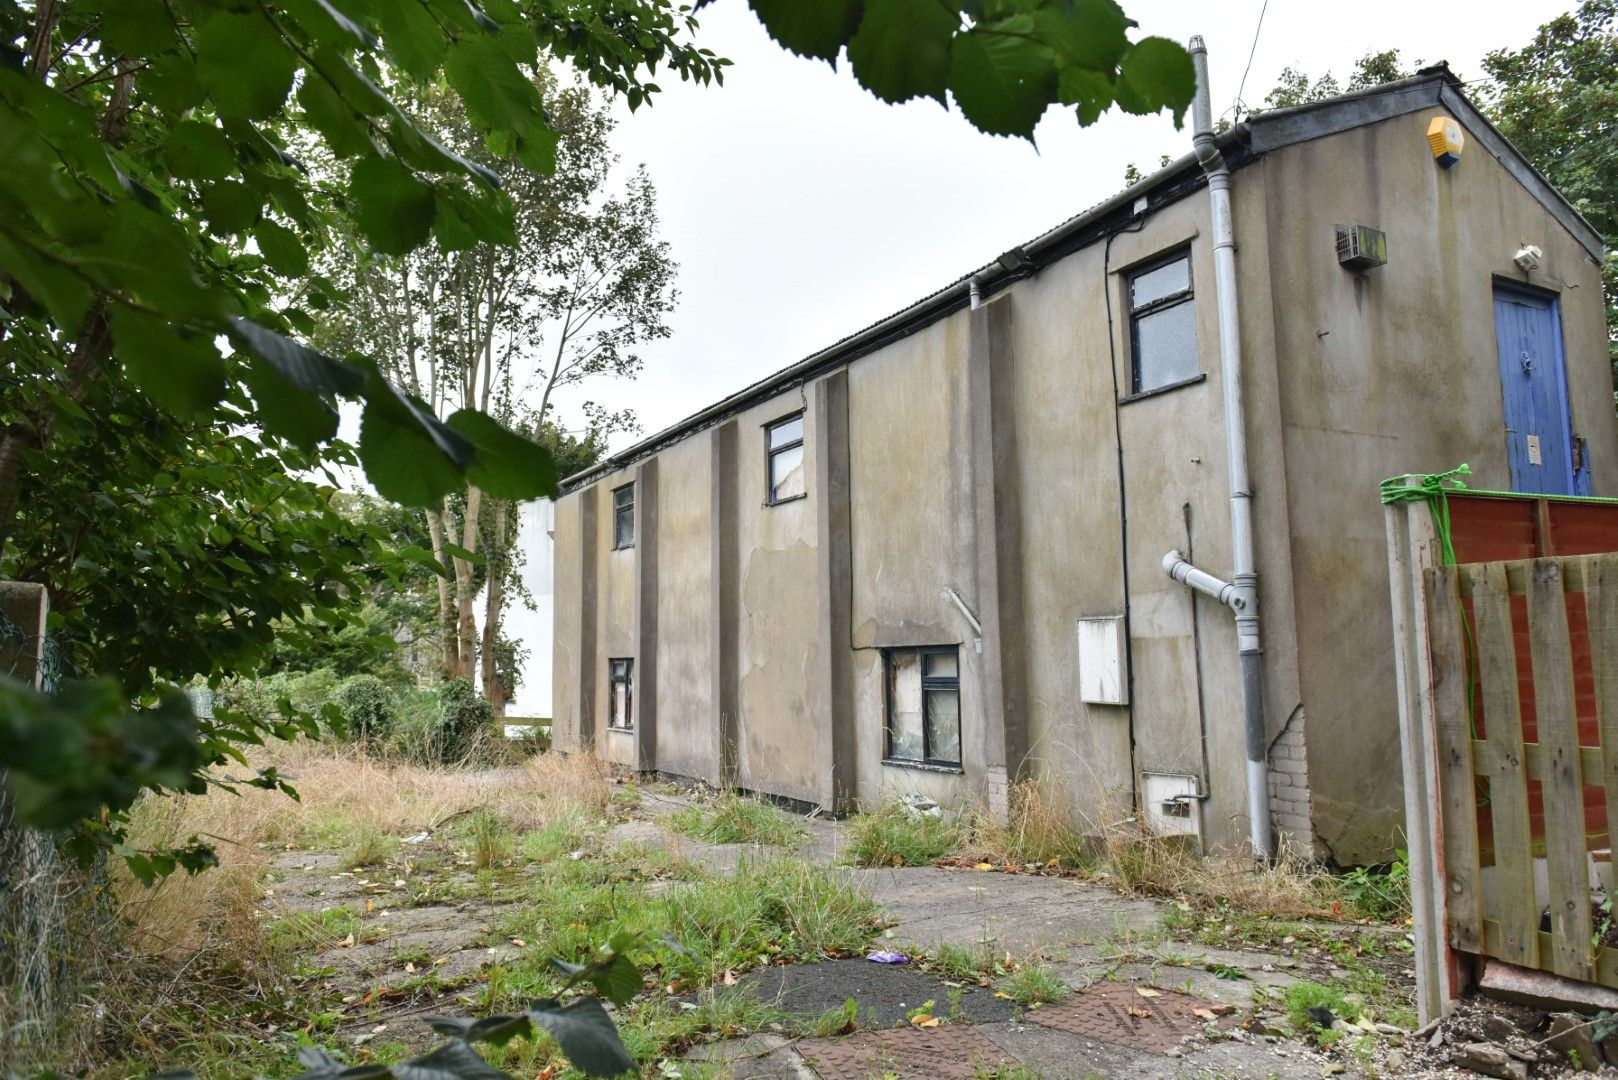 Office For Sale in Onchan - Property photograph